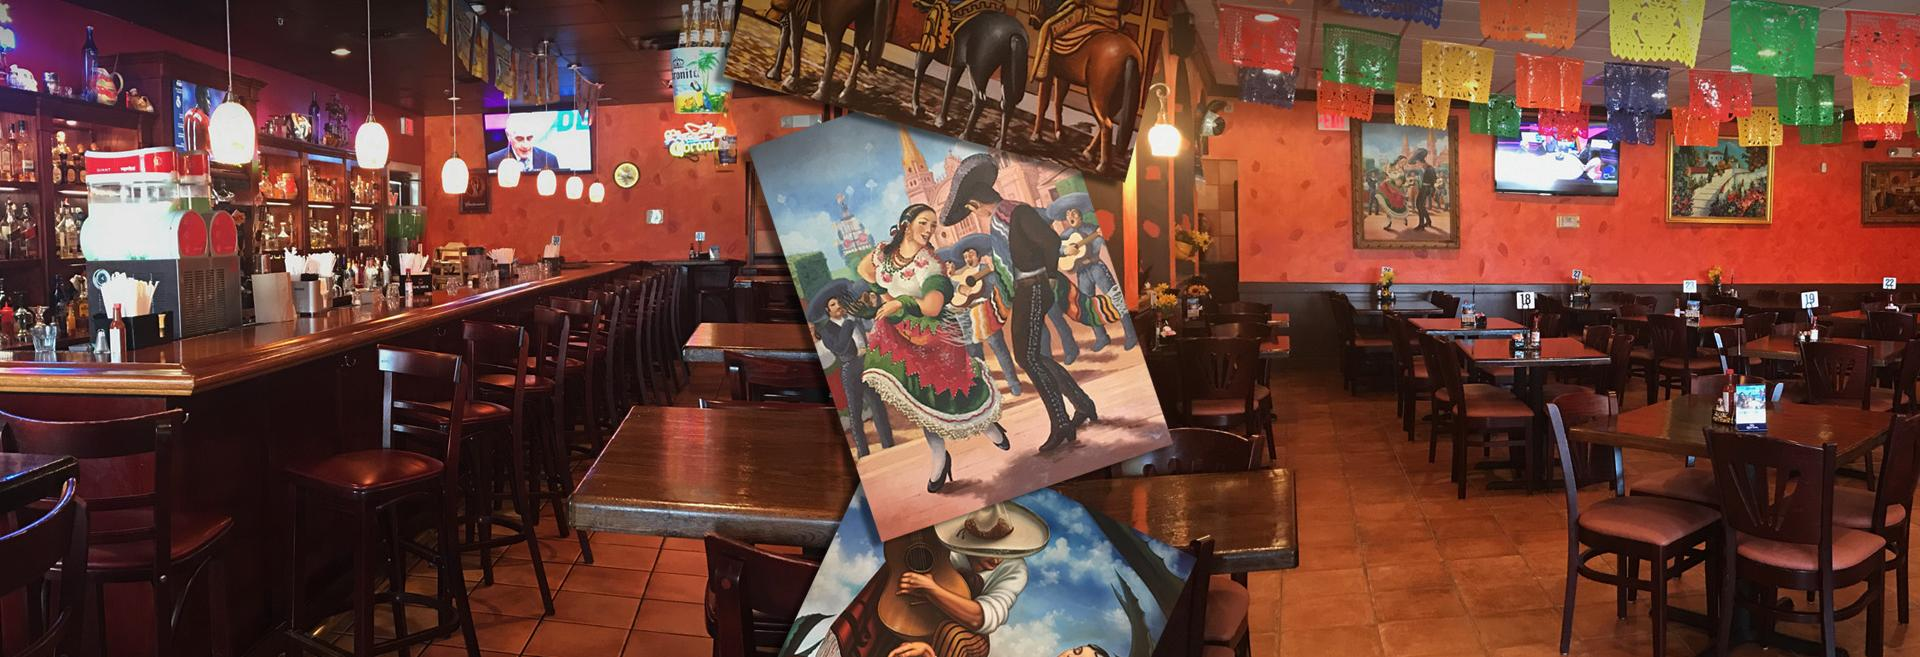 best mexican restaurant in middletown delaware